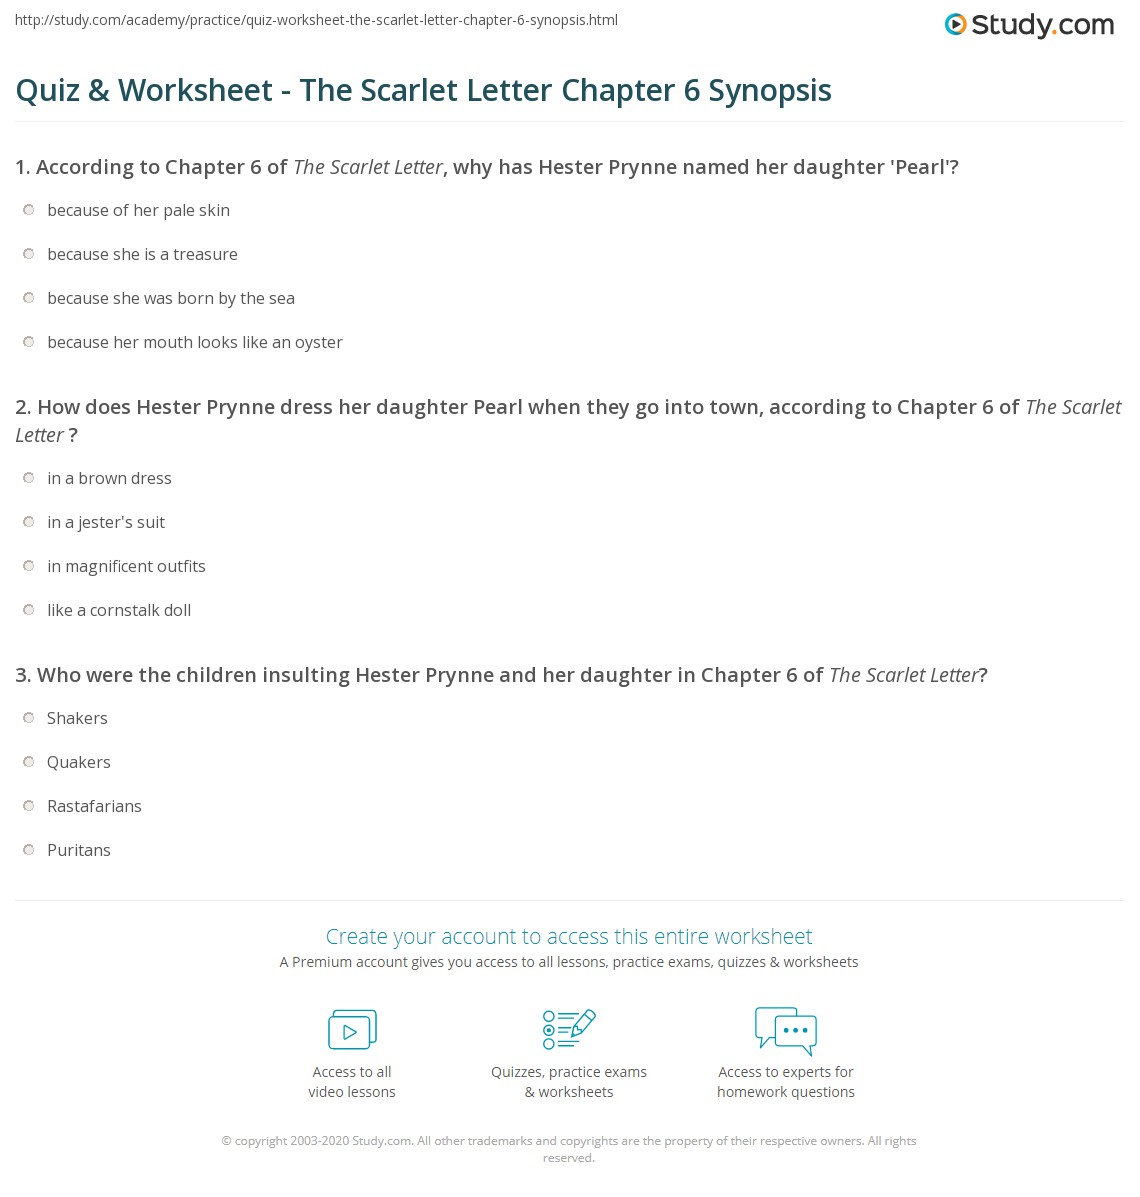 quiz worksheet the scarlet letter chapter 6 synopsis. Black Bedroom Furniture Sets. Home Design Ideas